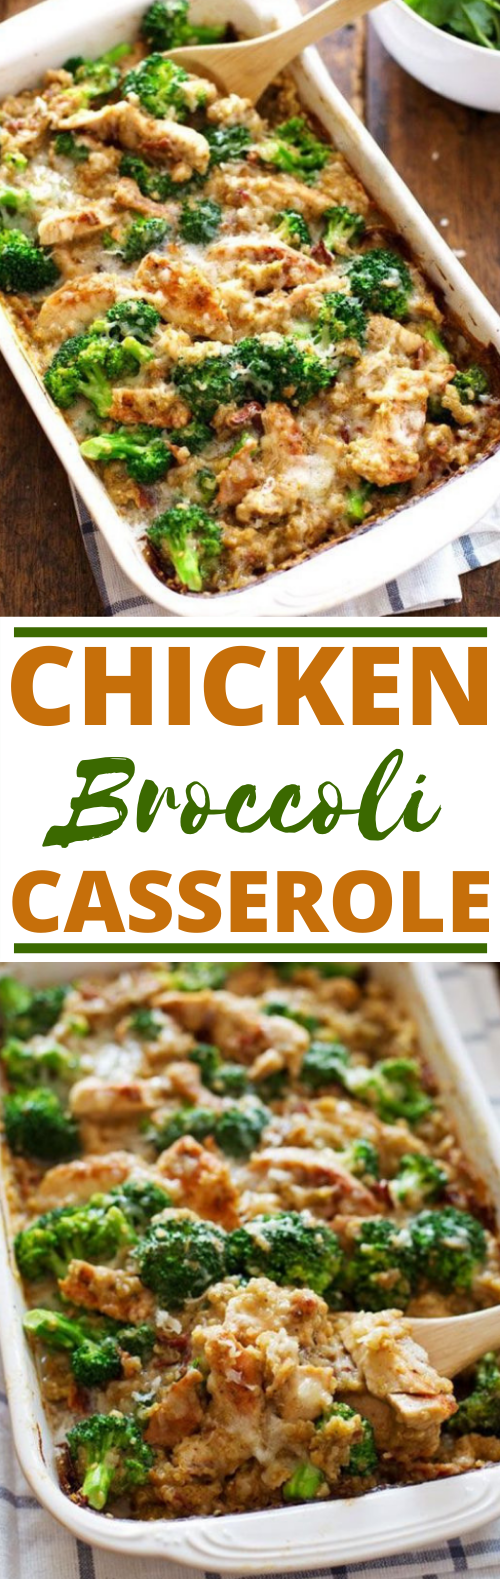 Creamy Chicken Quinoa and Broccoli Casserole #dinner #casserole #chicken #healthy #recipes